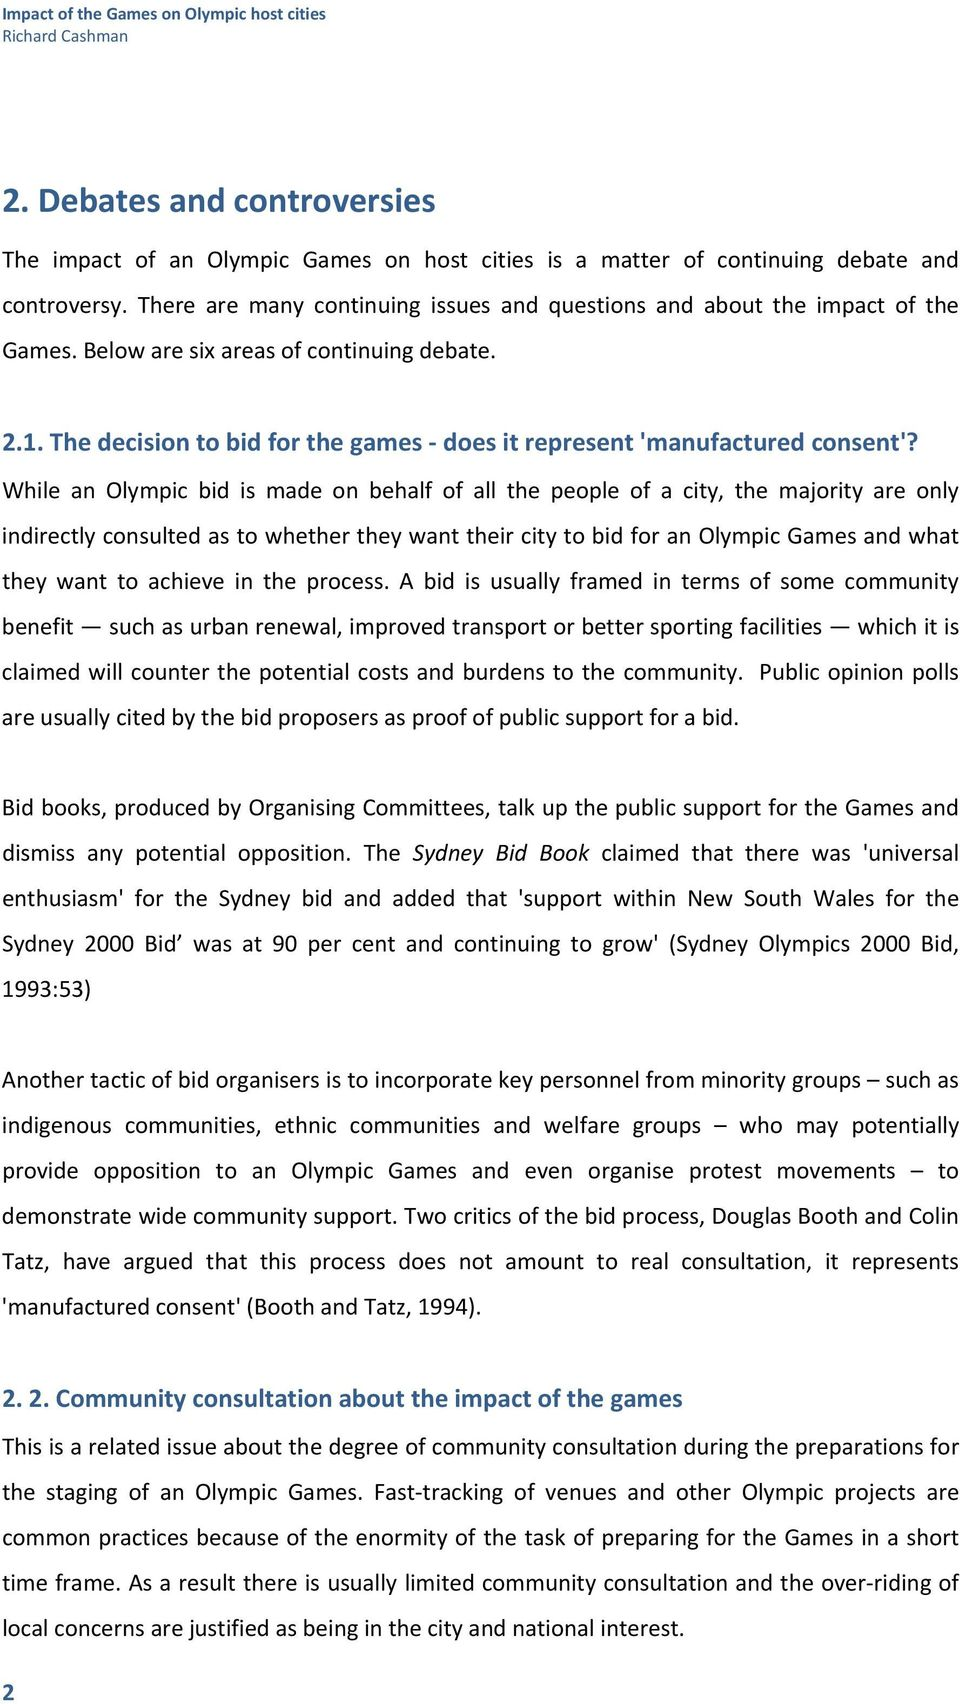 The decision to bid for the games does it represent 'manufactured consent'?